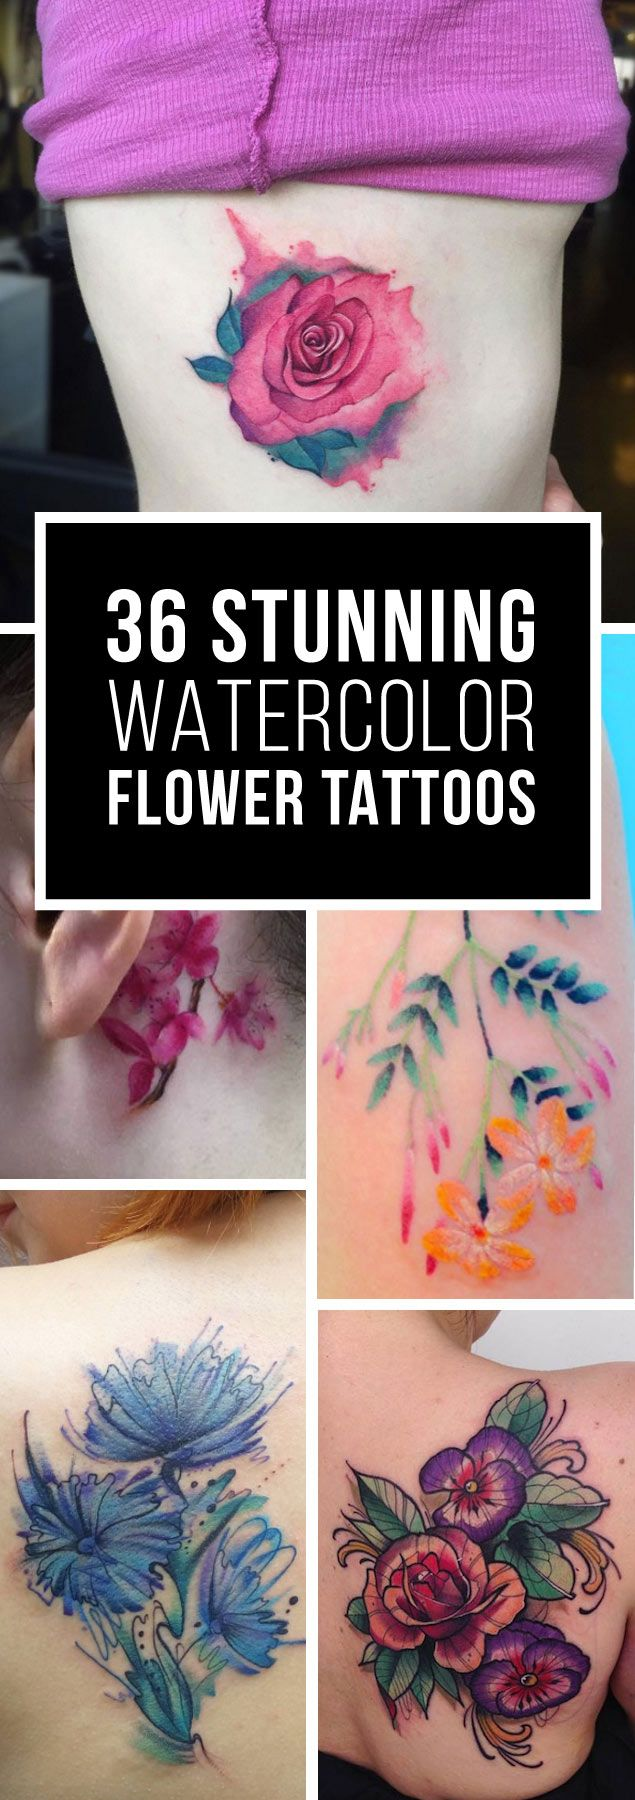 Amazing Watercolor Flower Tattoo Designs